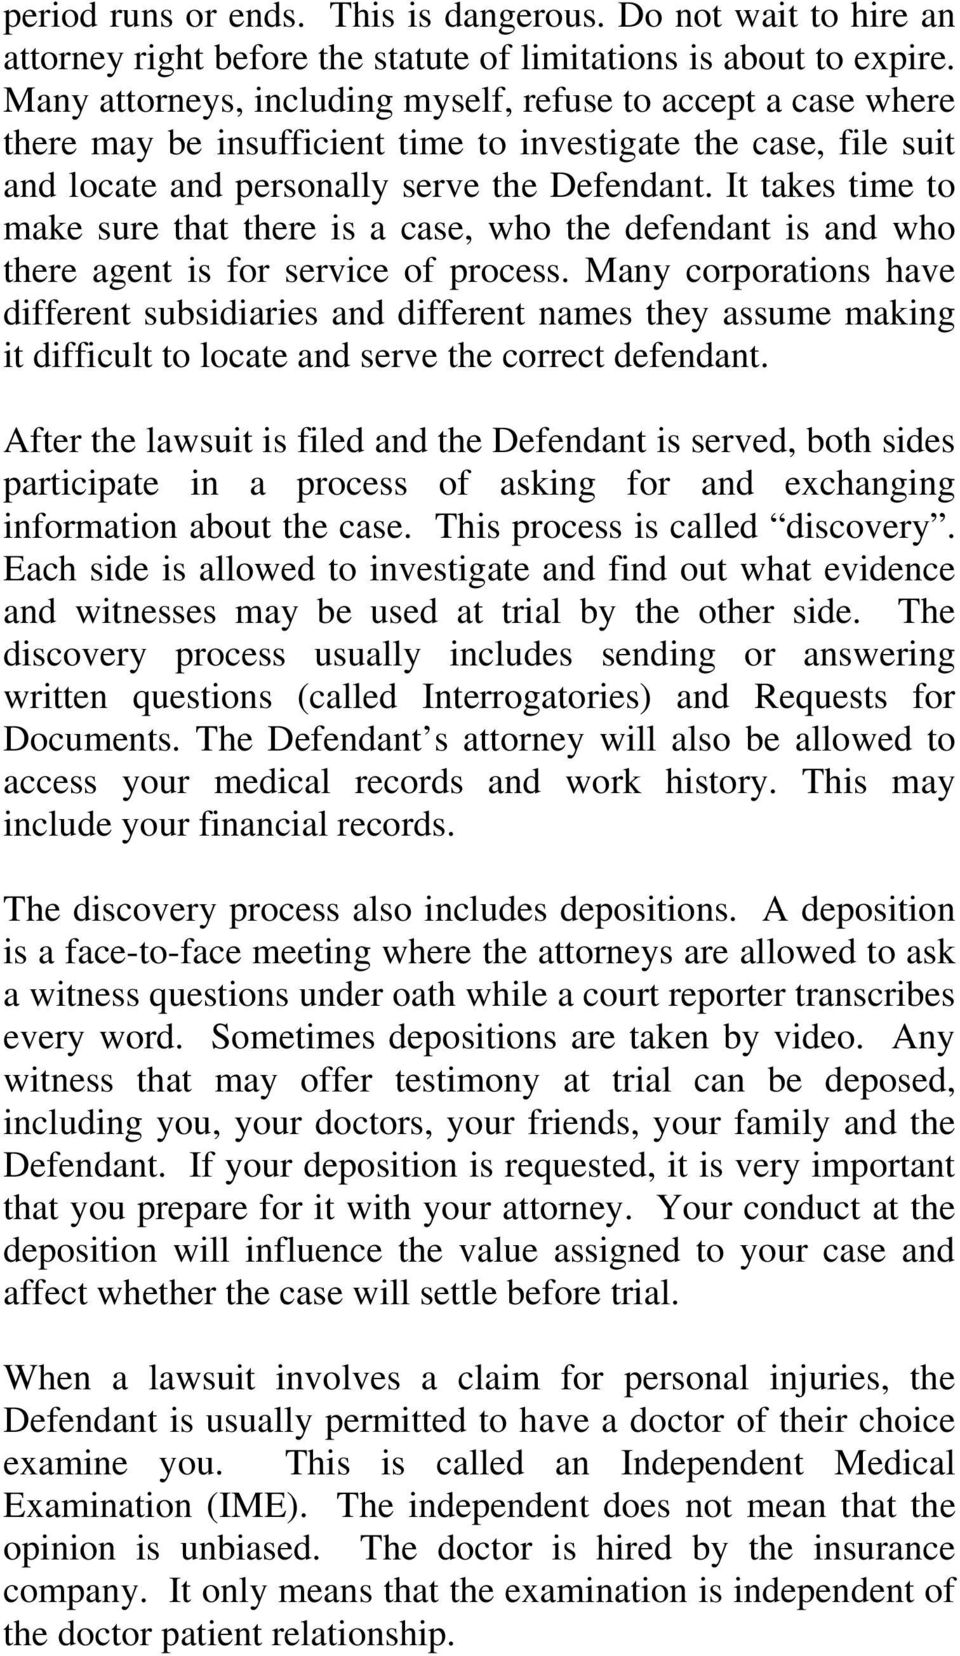 It takes time to make sure that there is a case, who the defendant is and who there agent is for service of process.